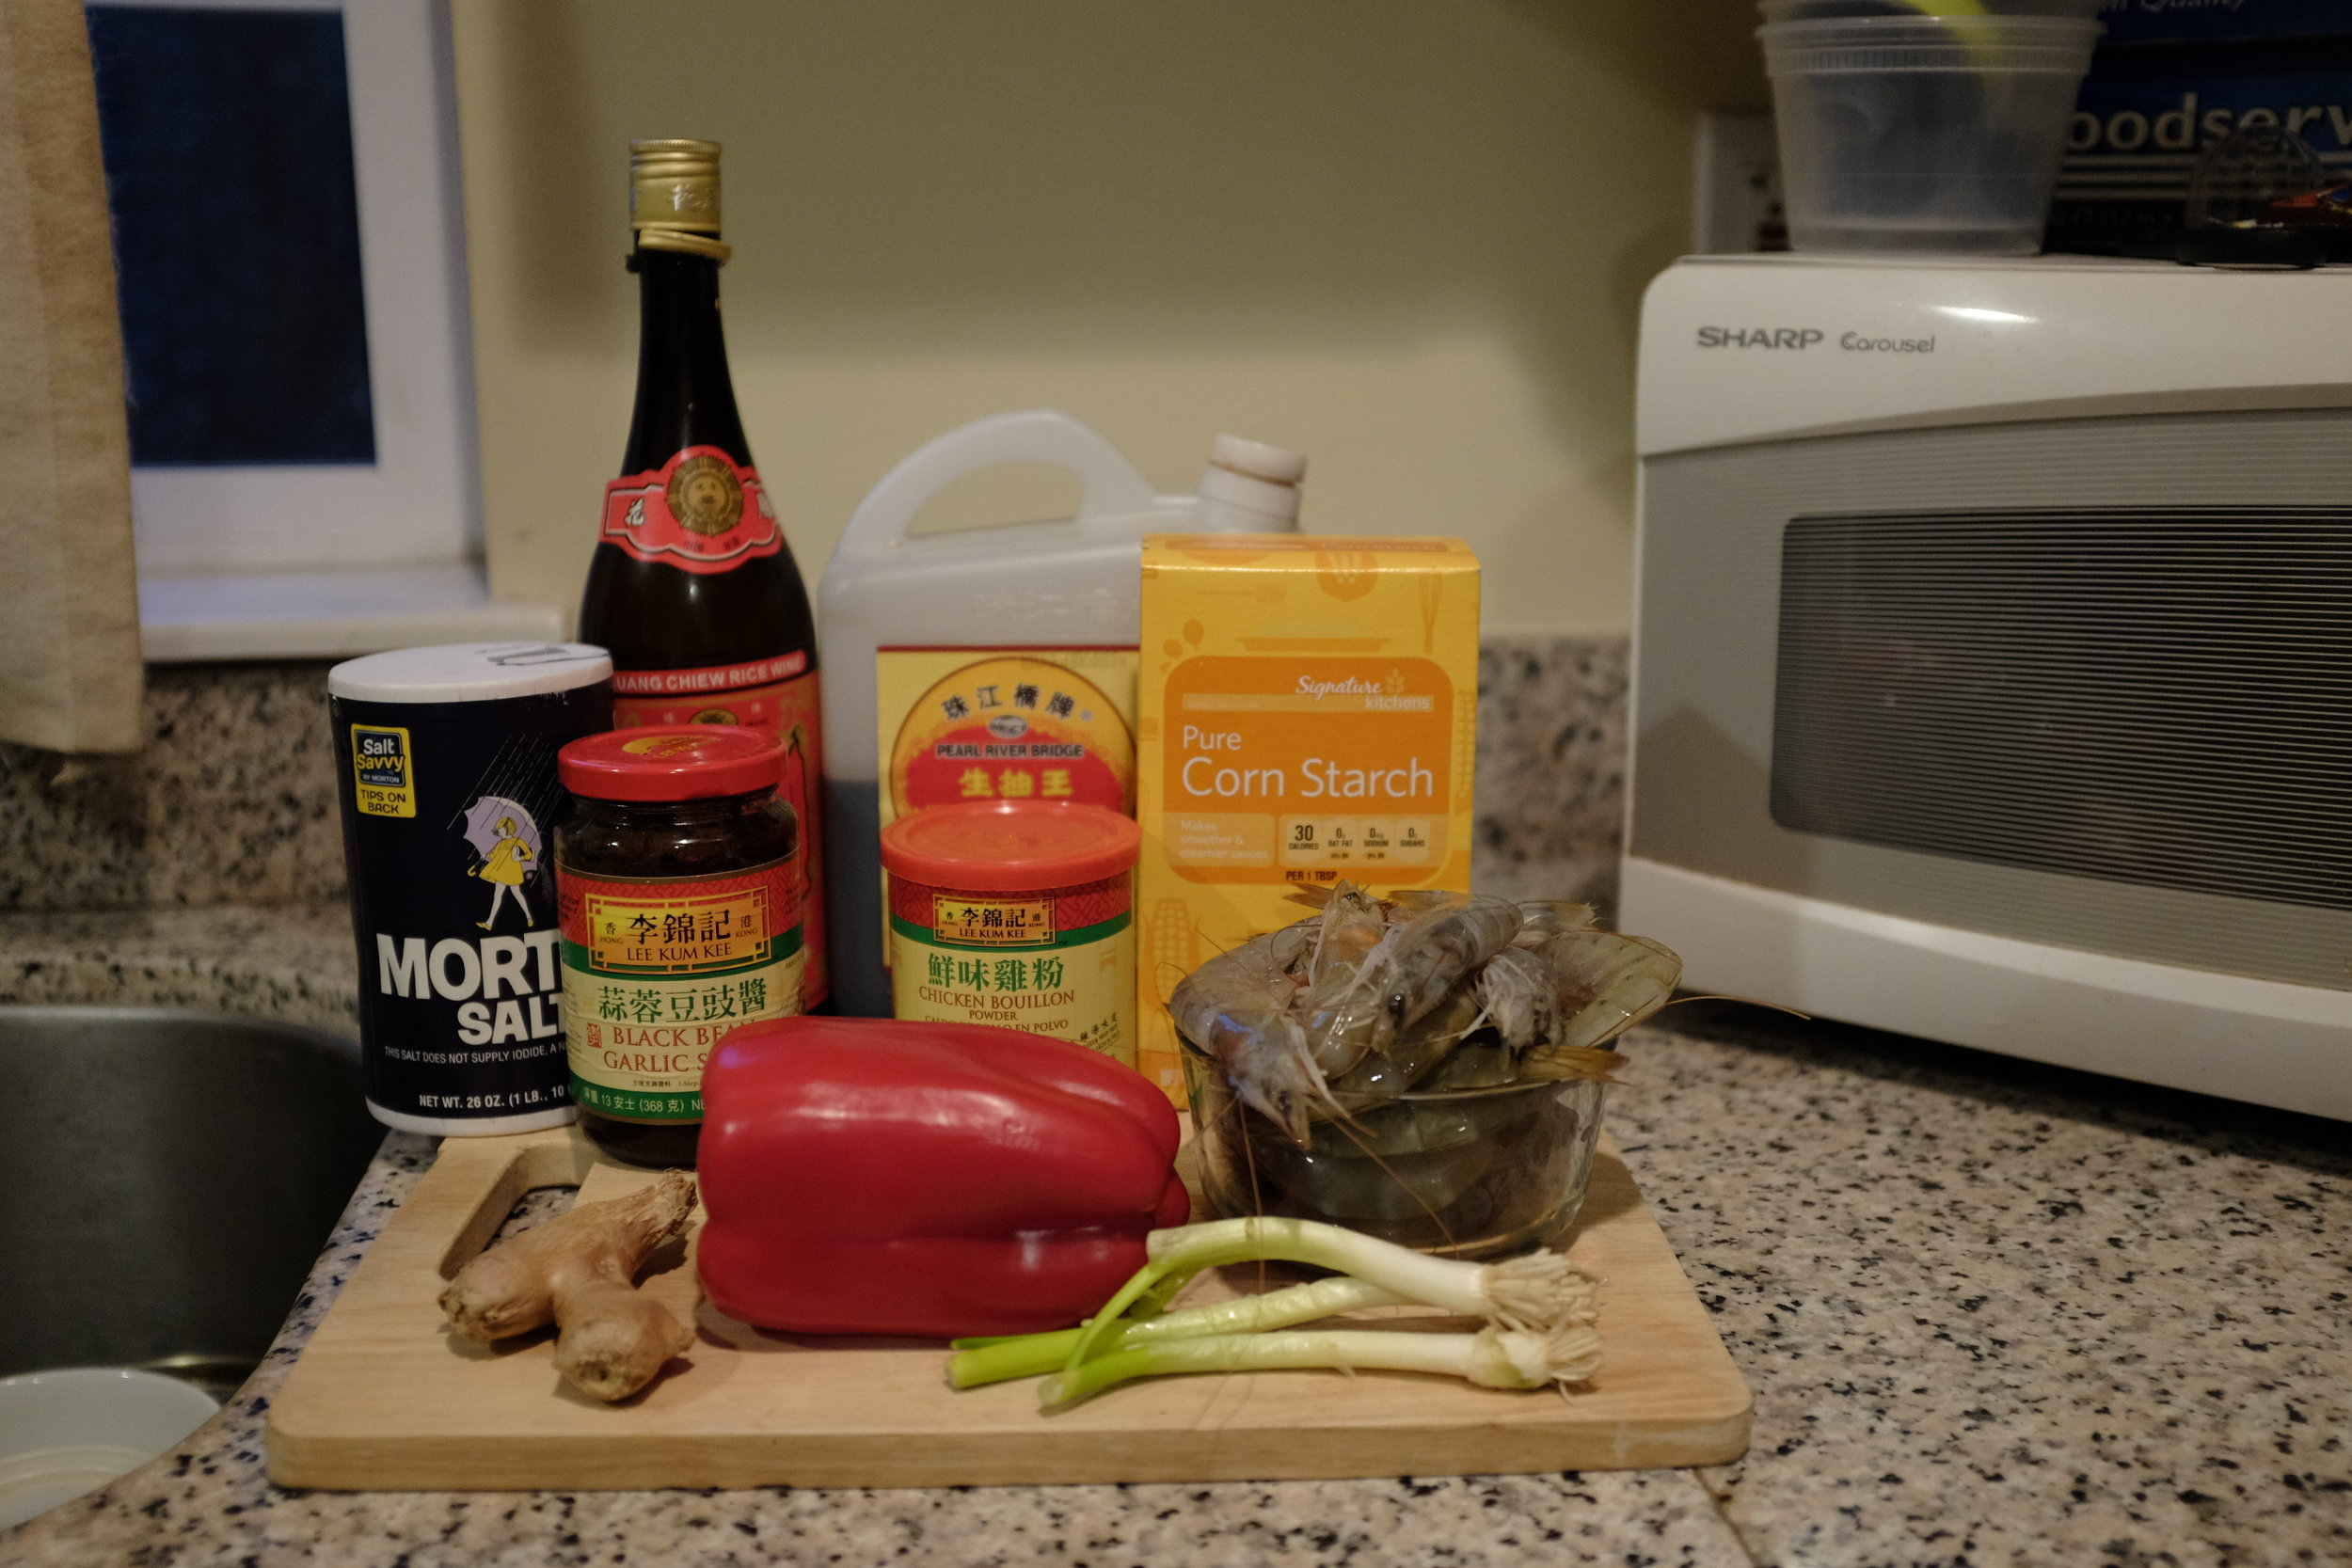 The ingredients in all their glory.